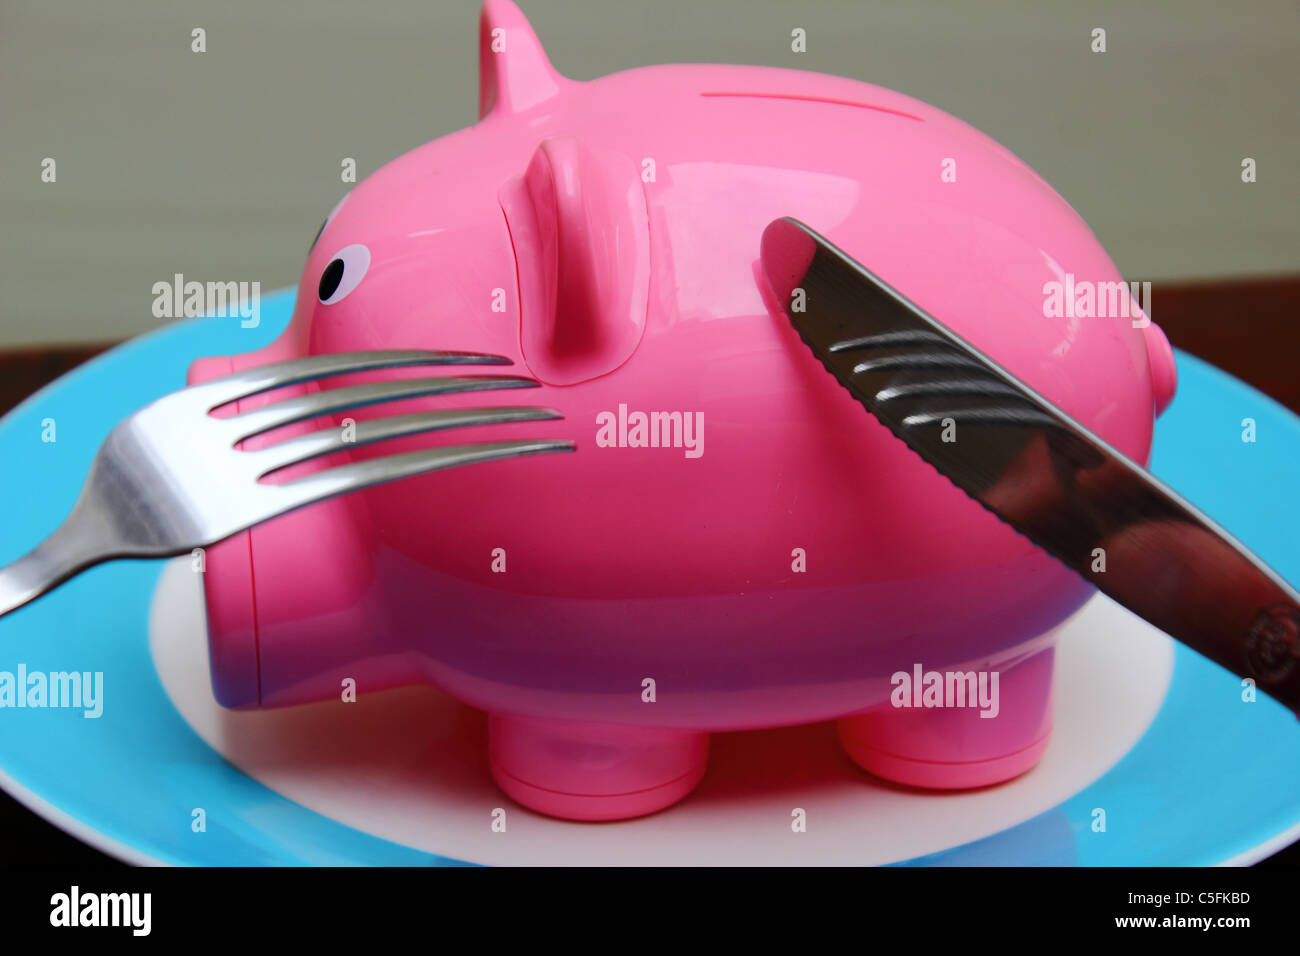 a piggy bank on a plate ready to been eaten, conceptual image - Stock Image